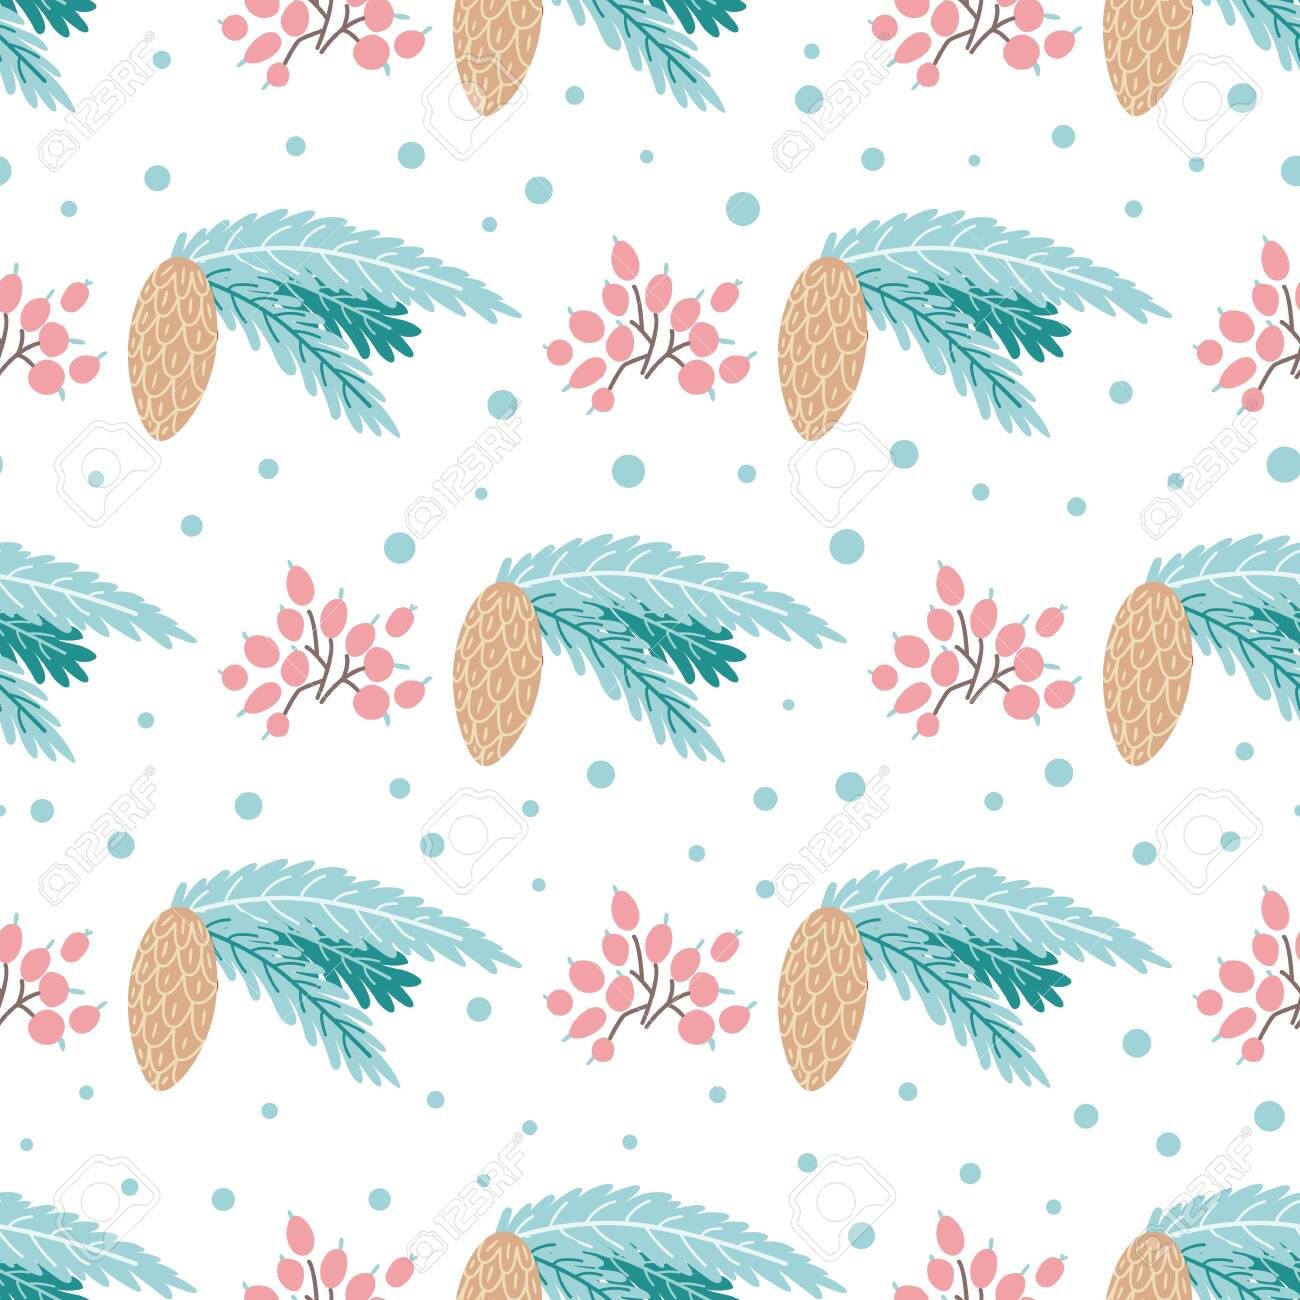 Winter Pine Pattern Fir Cones Seamless Background Christmas Plant Royalty Free Cliparts Vectors And Stock Illustration Image 130021722